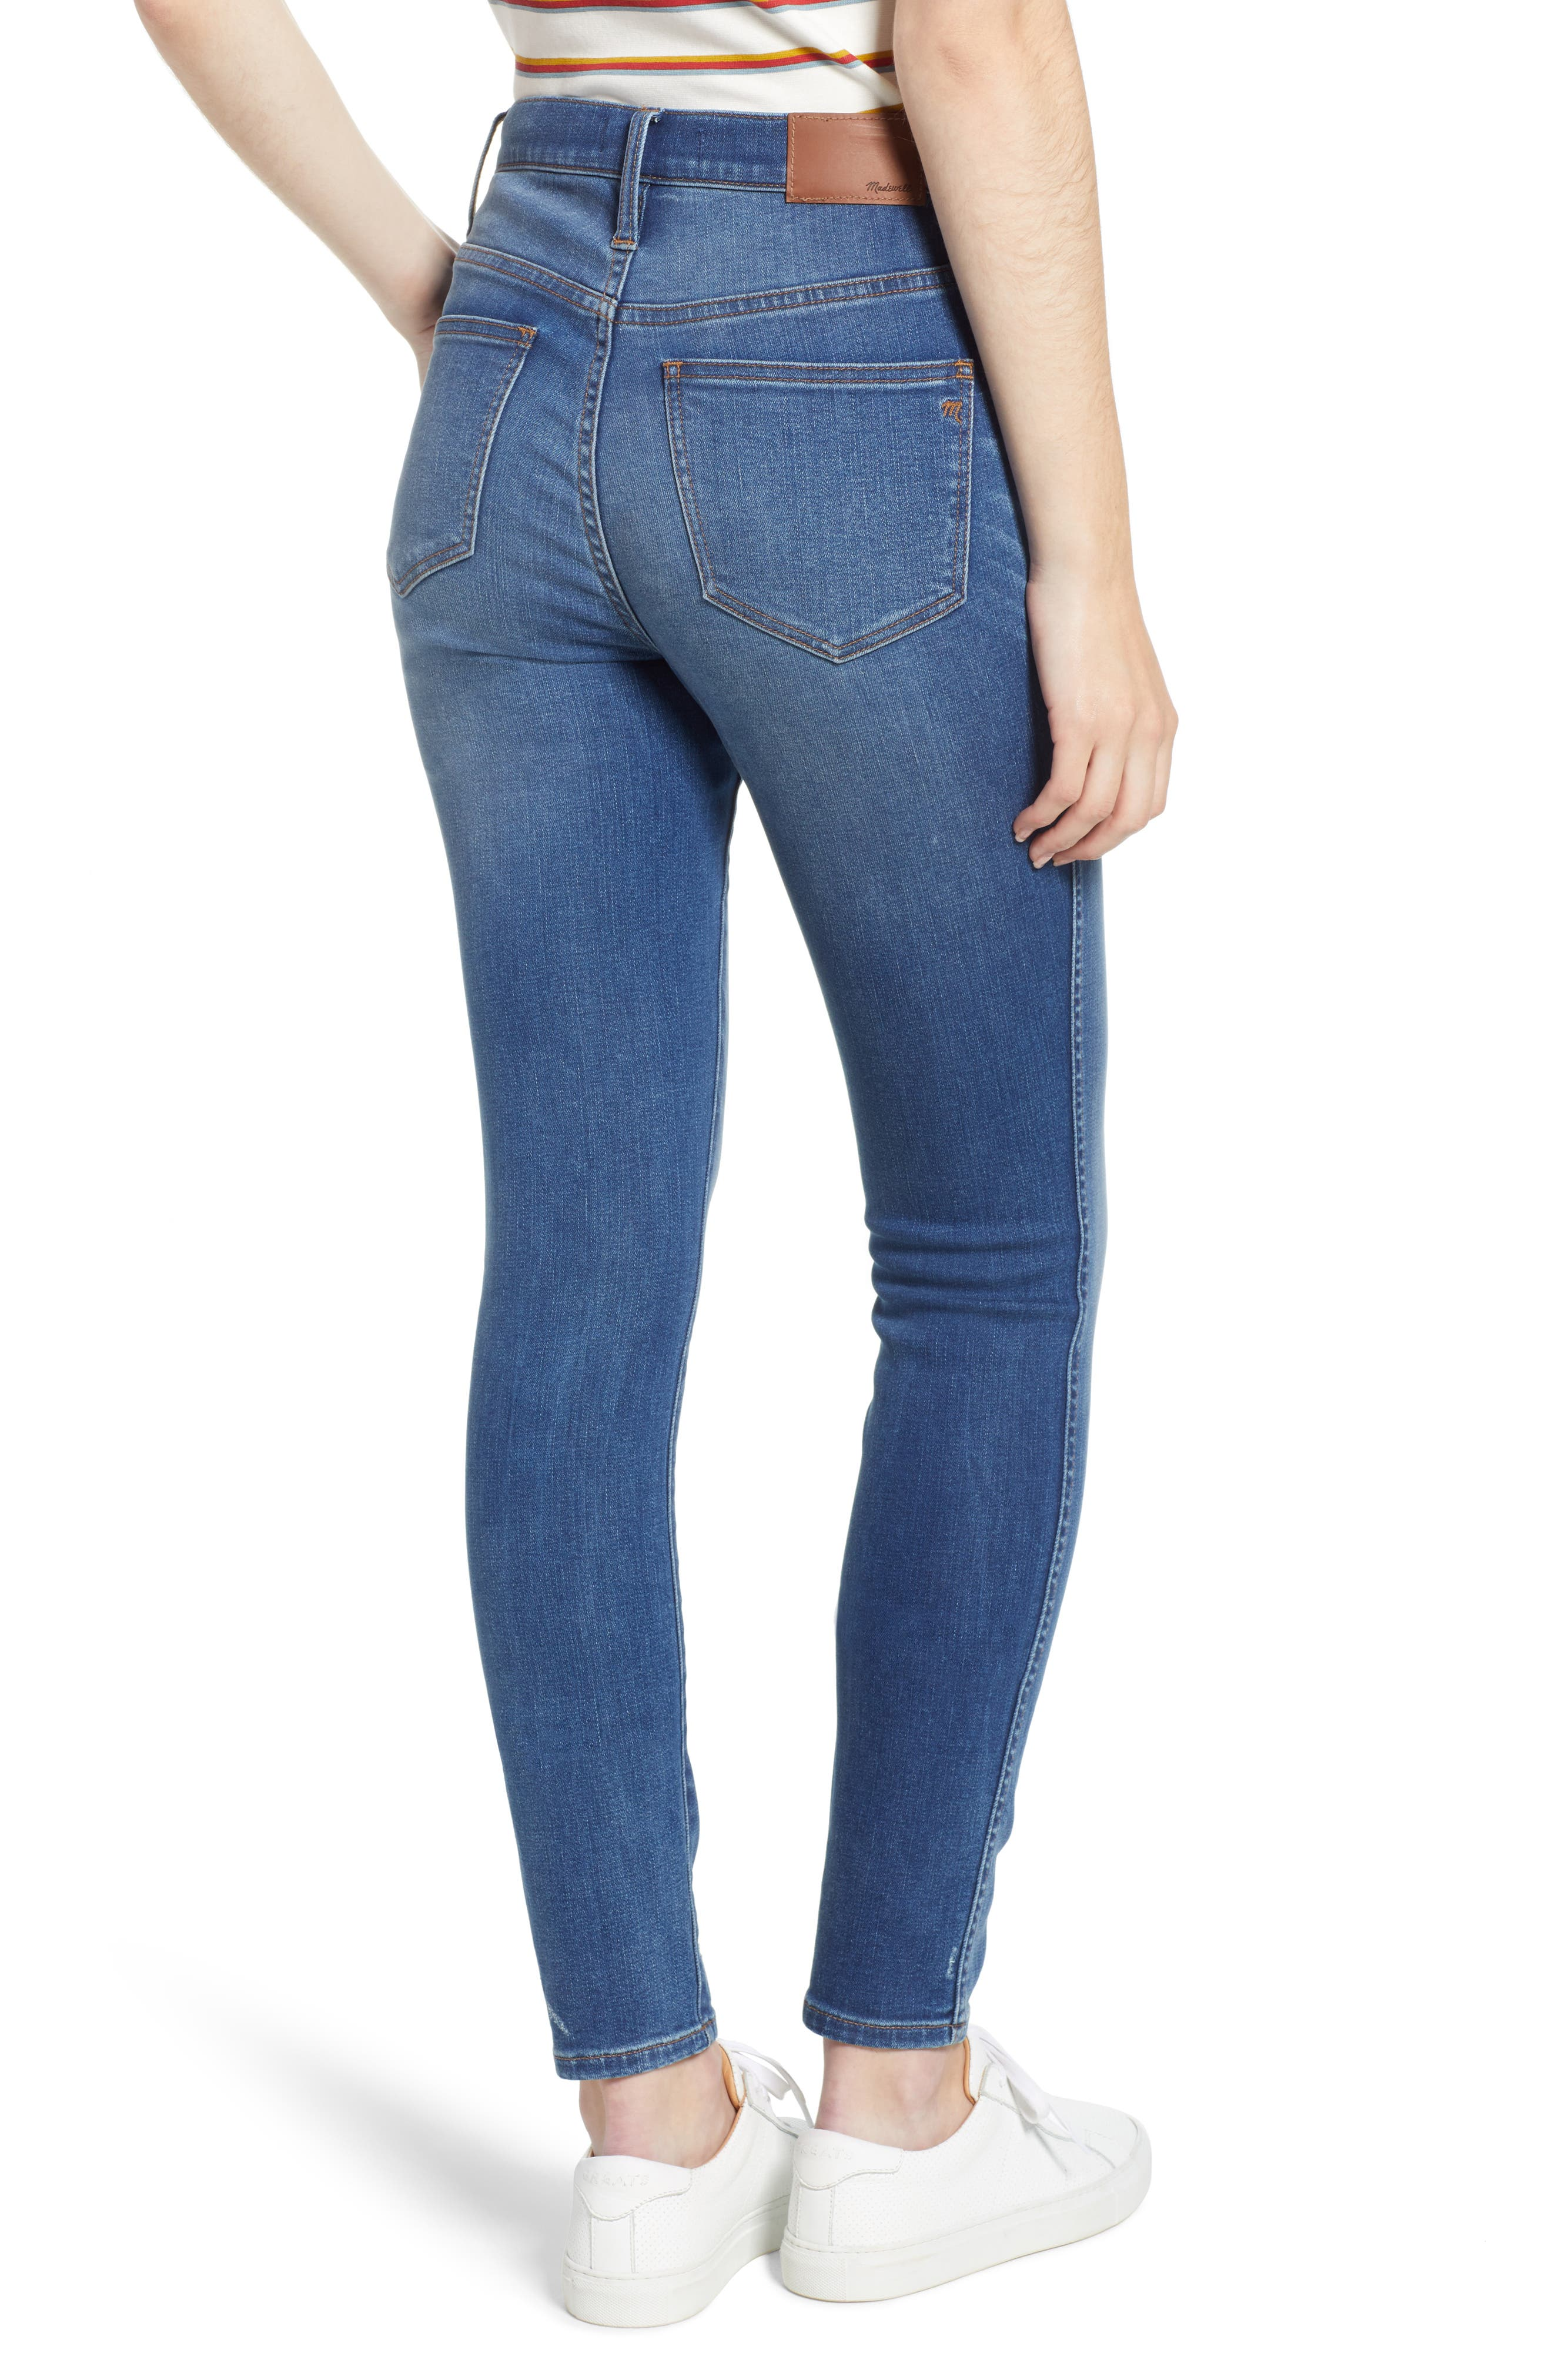 10-Inch High Waist Skinny Jeans,                             Alternate thumbnail 2, color,                             400